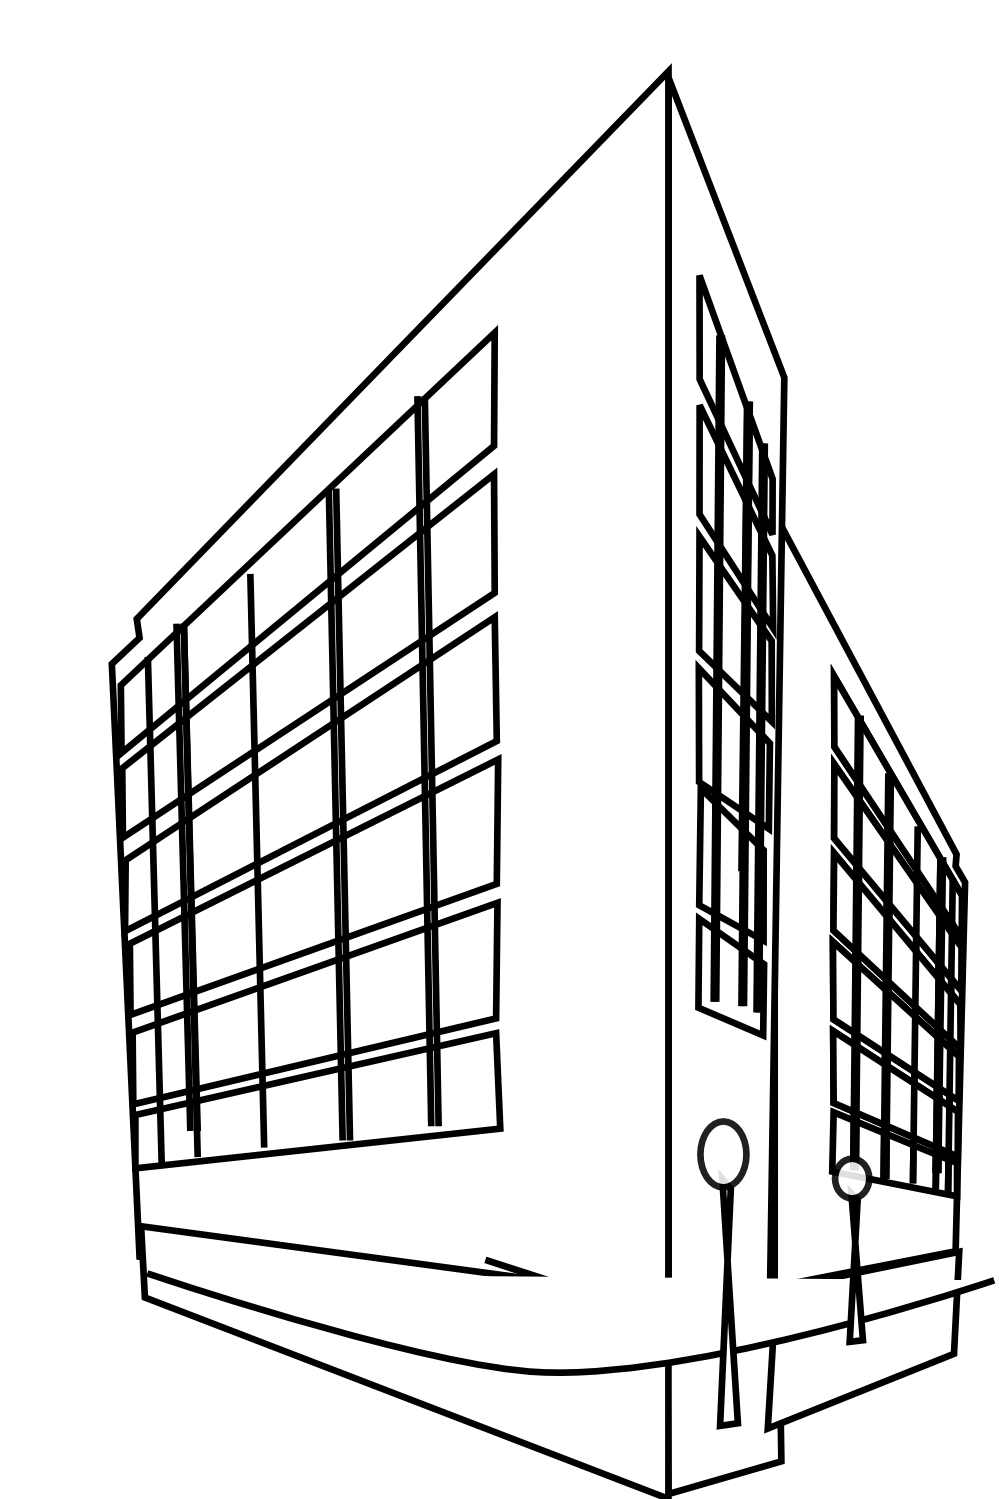 Building clipart. Black and panda free